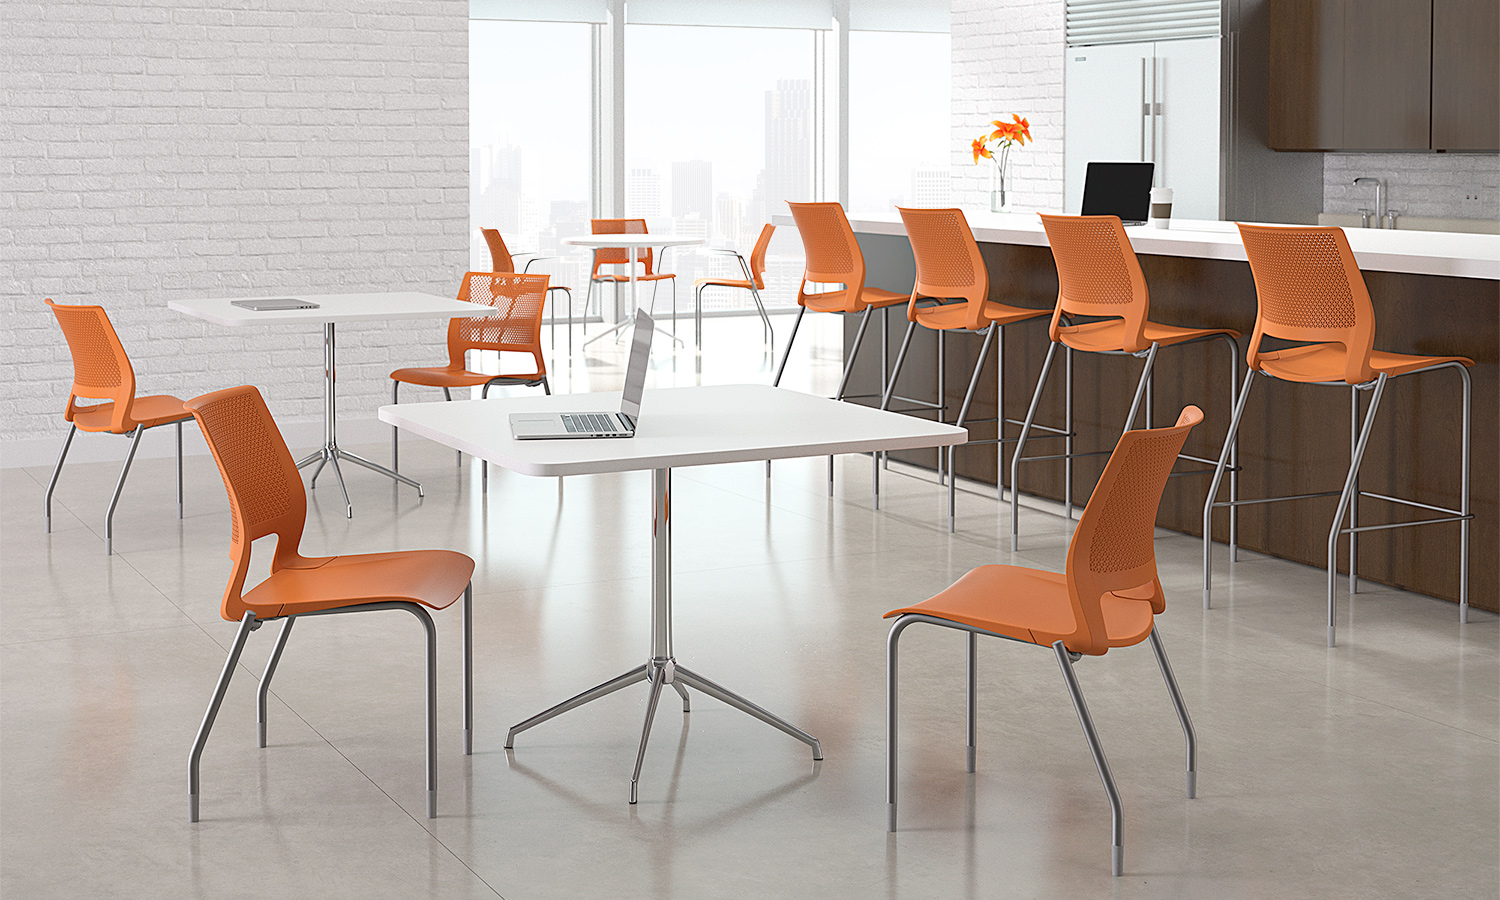 lumin carotene silver frame armless cafe stool environment